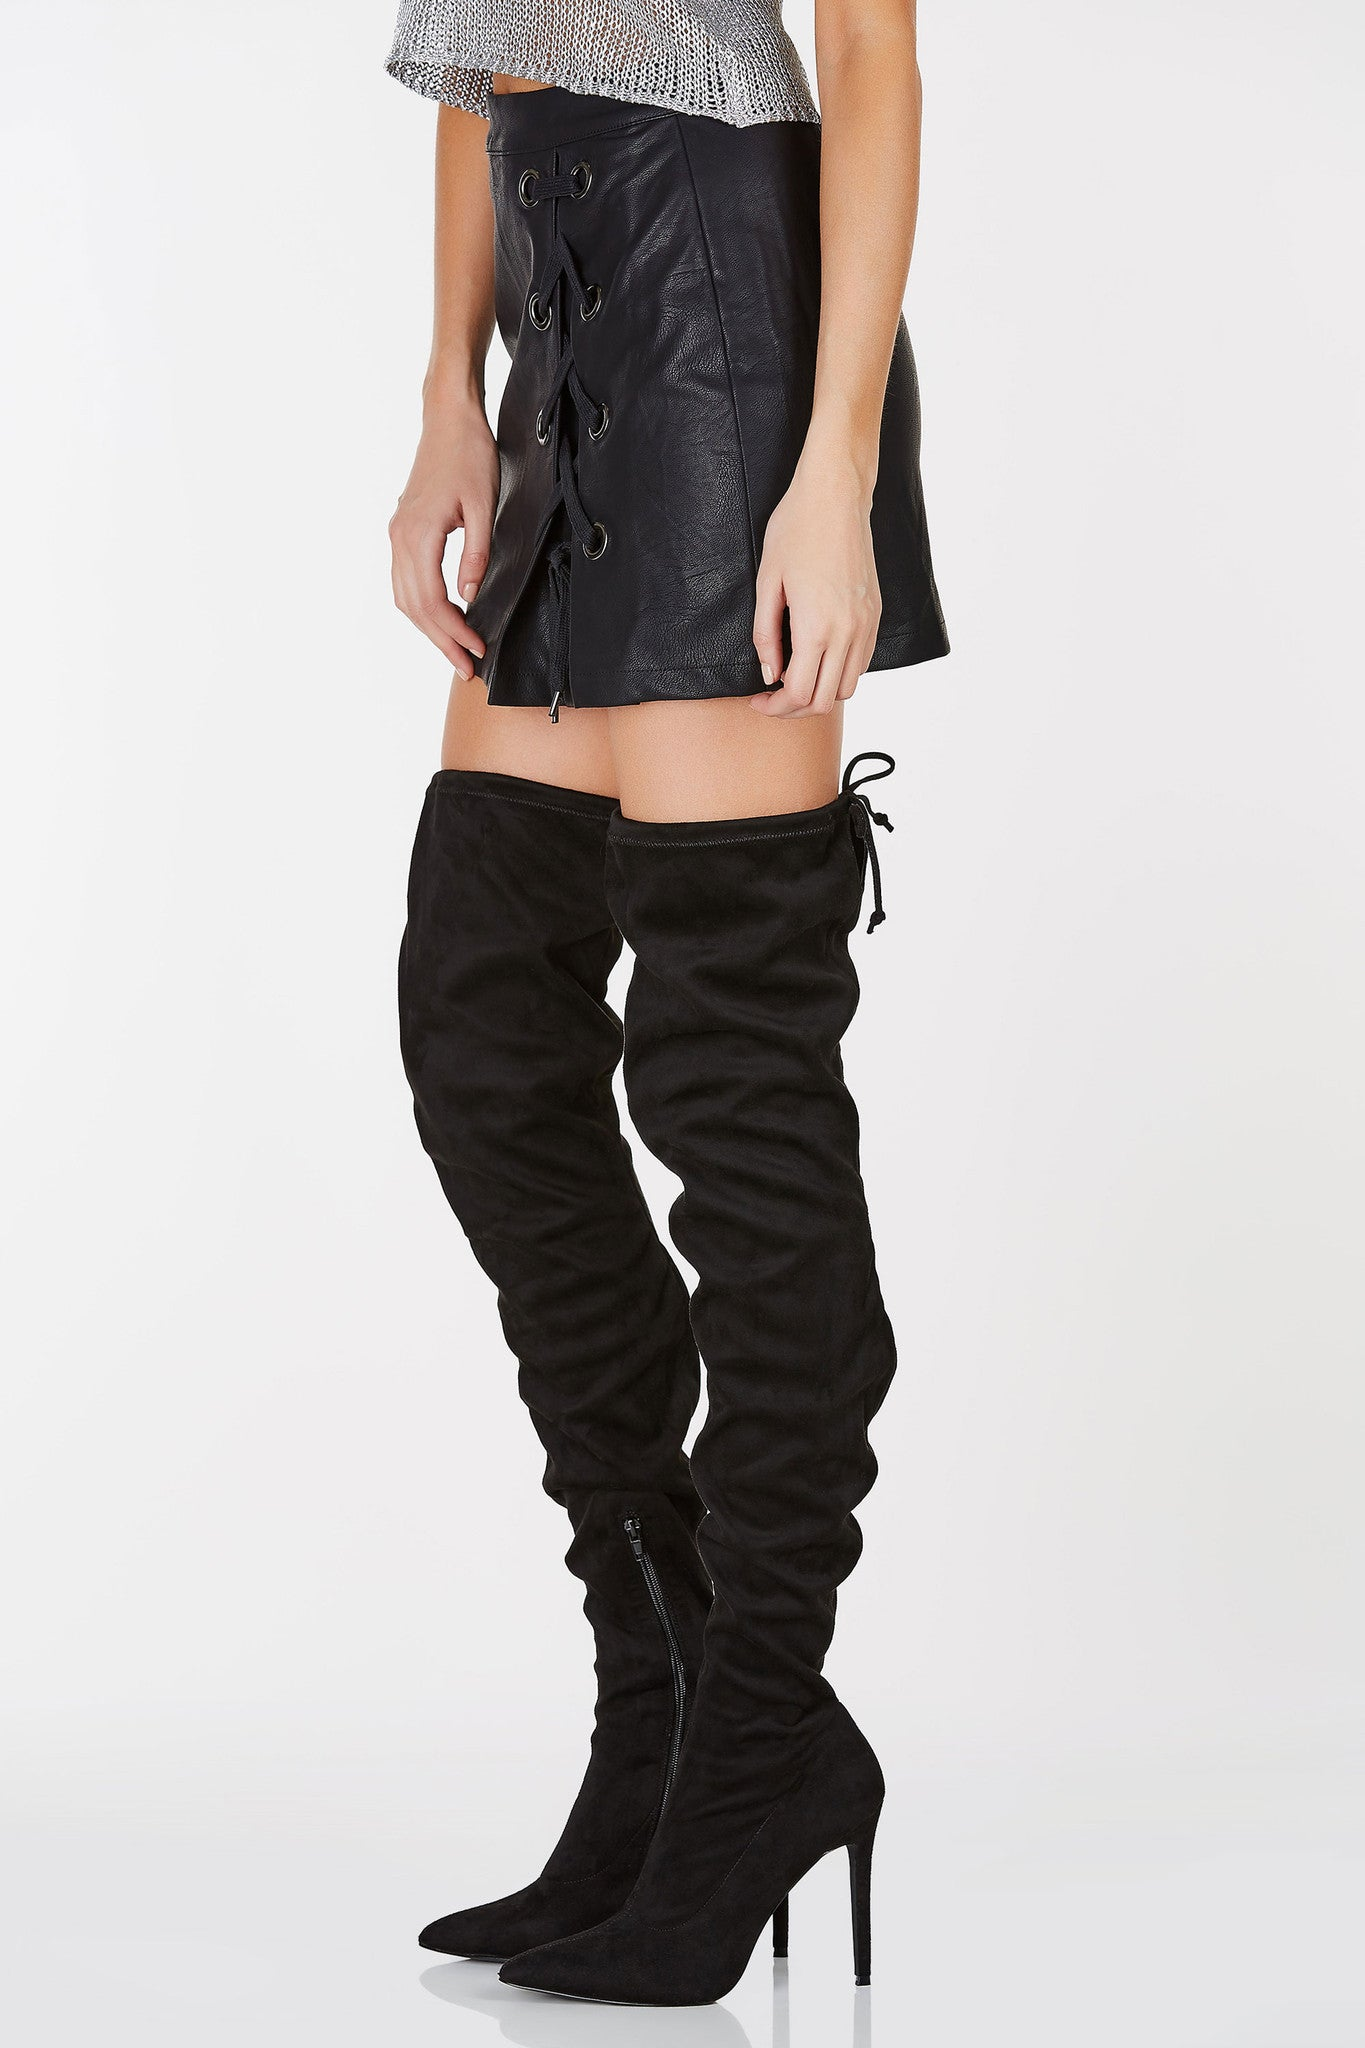 Mid rise mini skirt with faux leather finish. Lace up detailing with back zip closure.